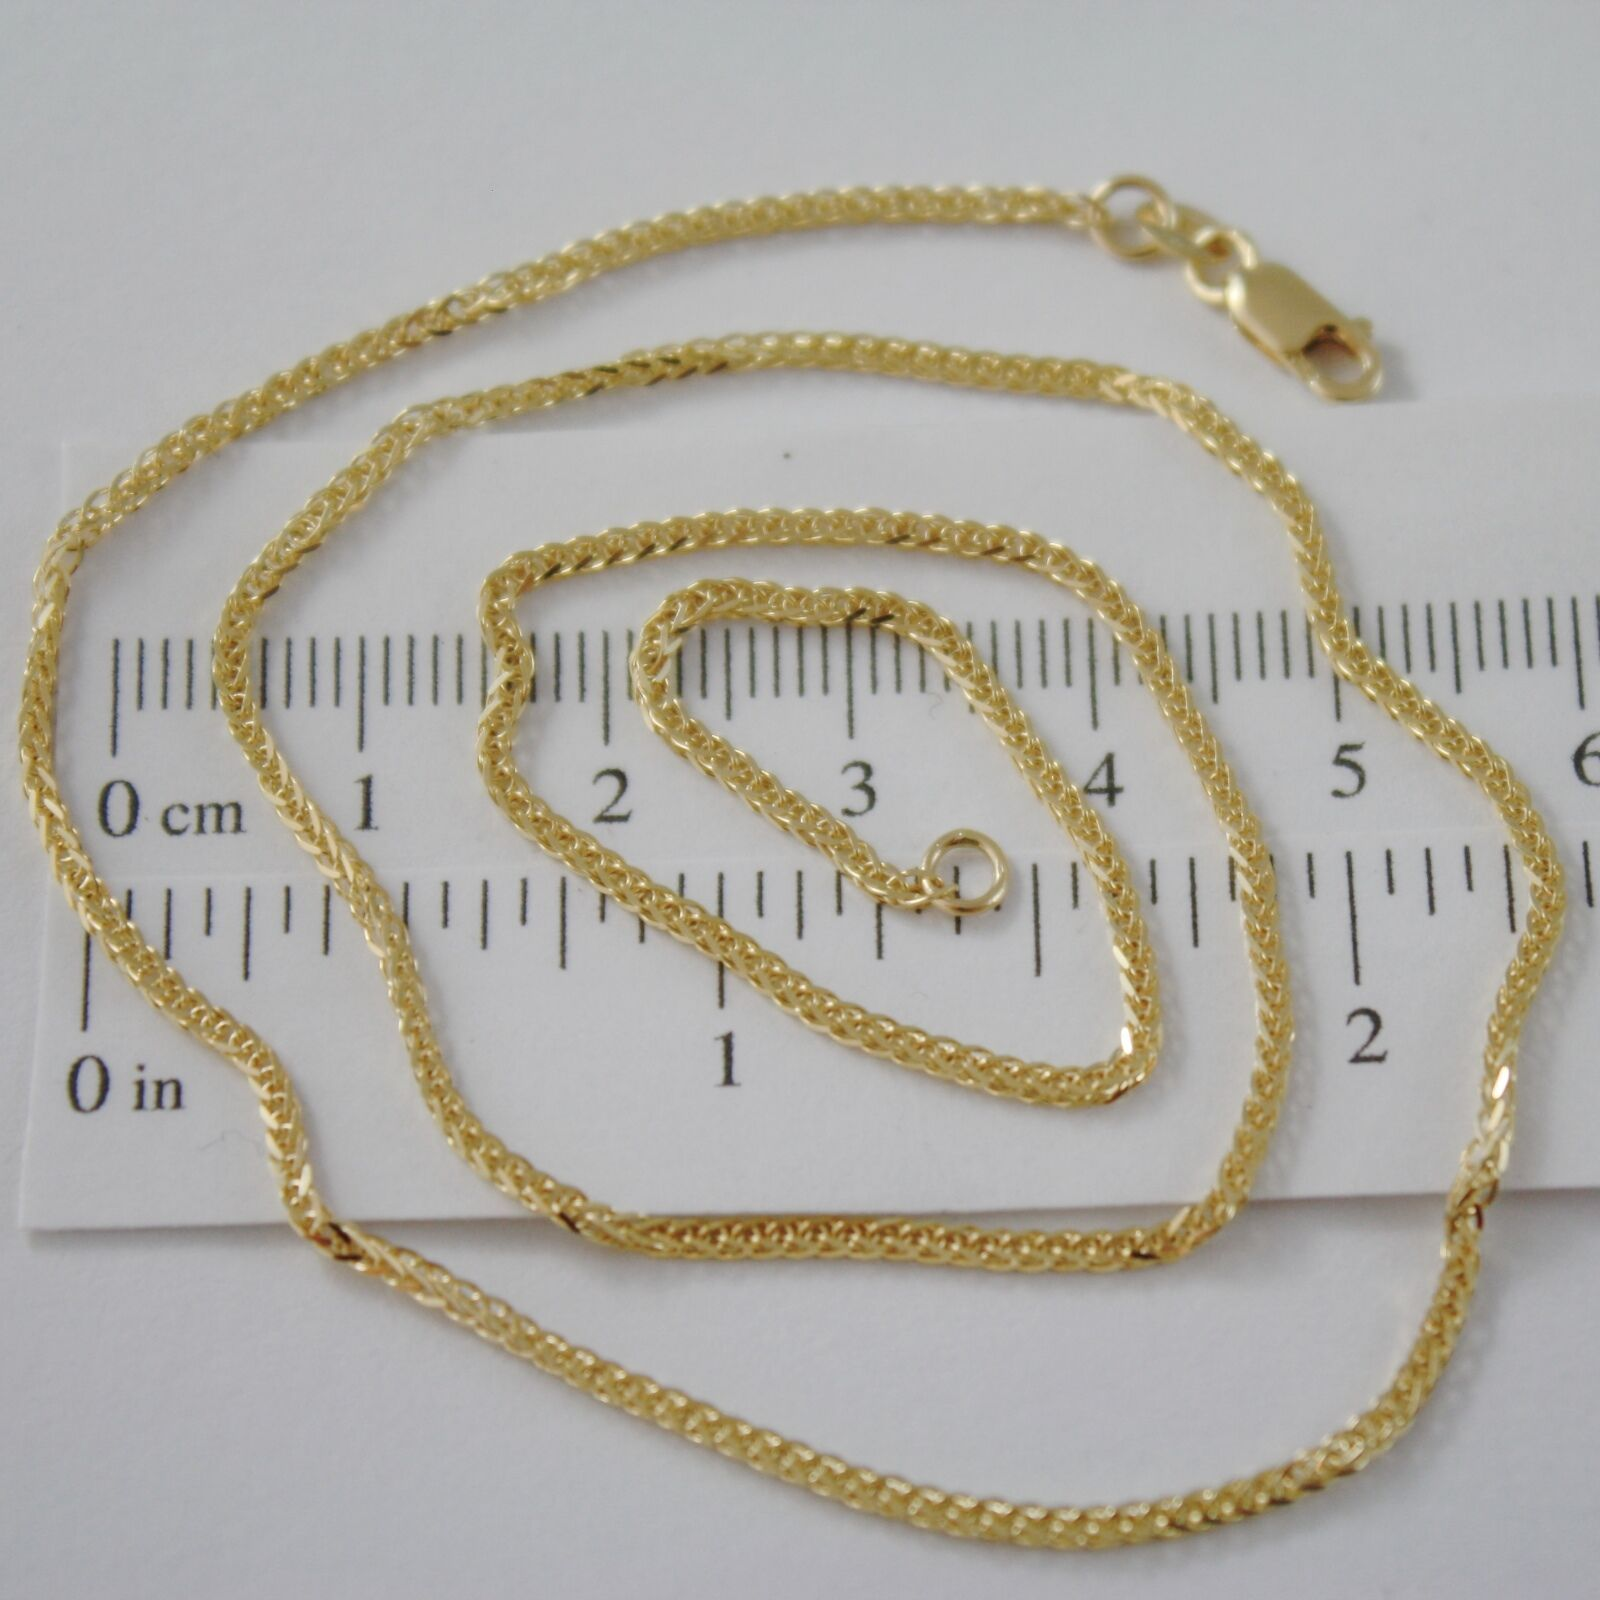 SOLID 18K YELLOW GOLD CHAIN NECKLACE, EAR SQUARE LINK 23.62 INCHES MADE IN ITALY